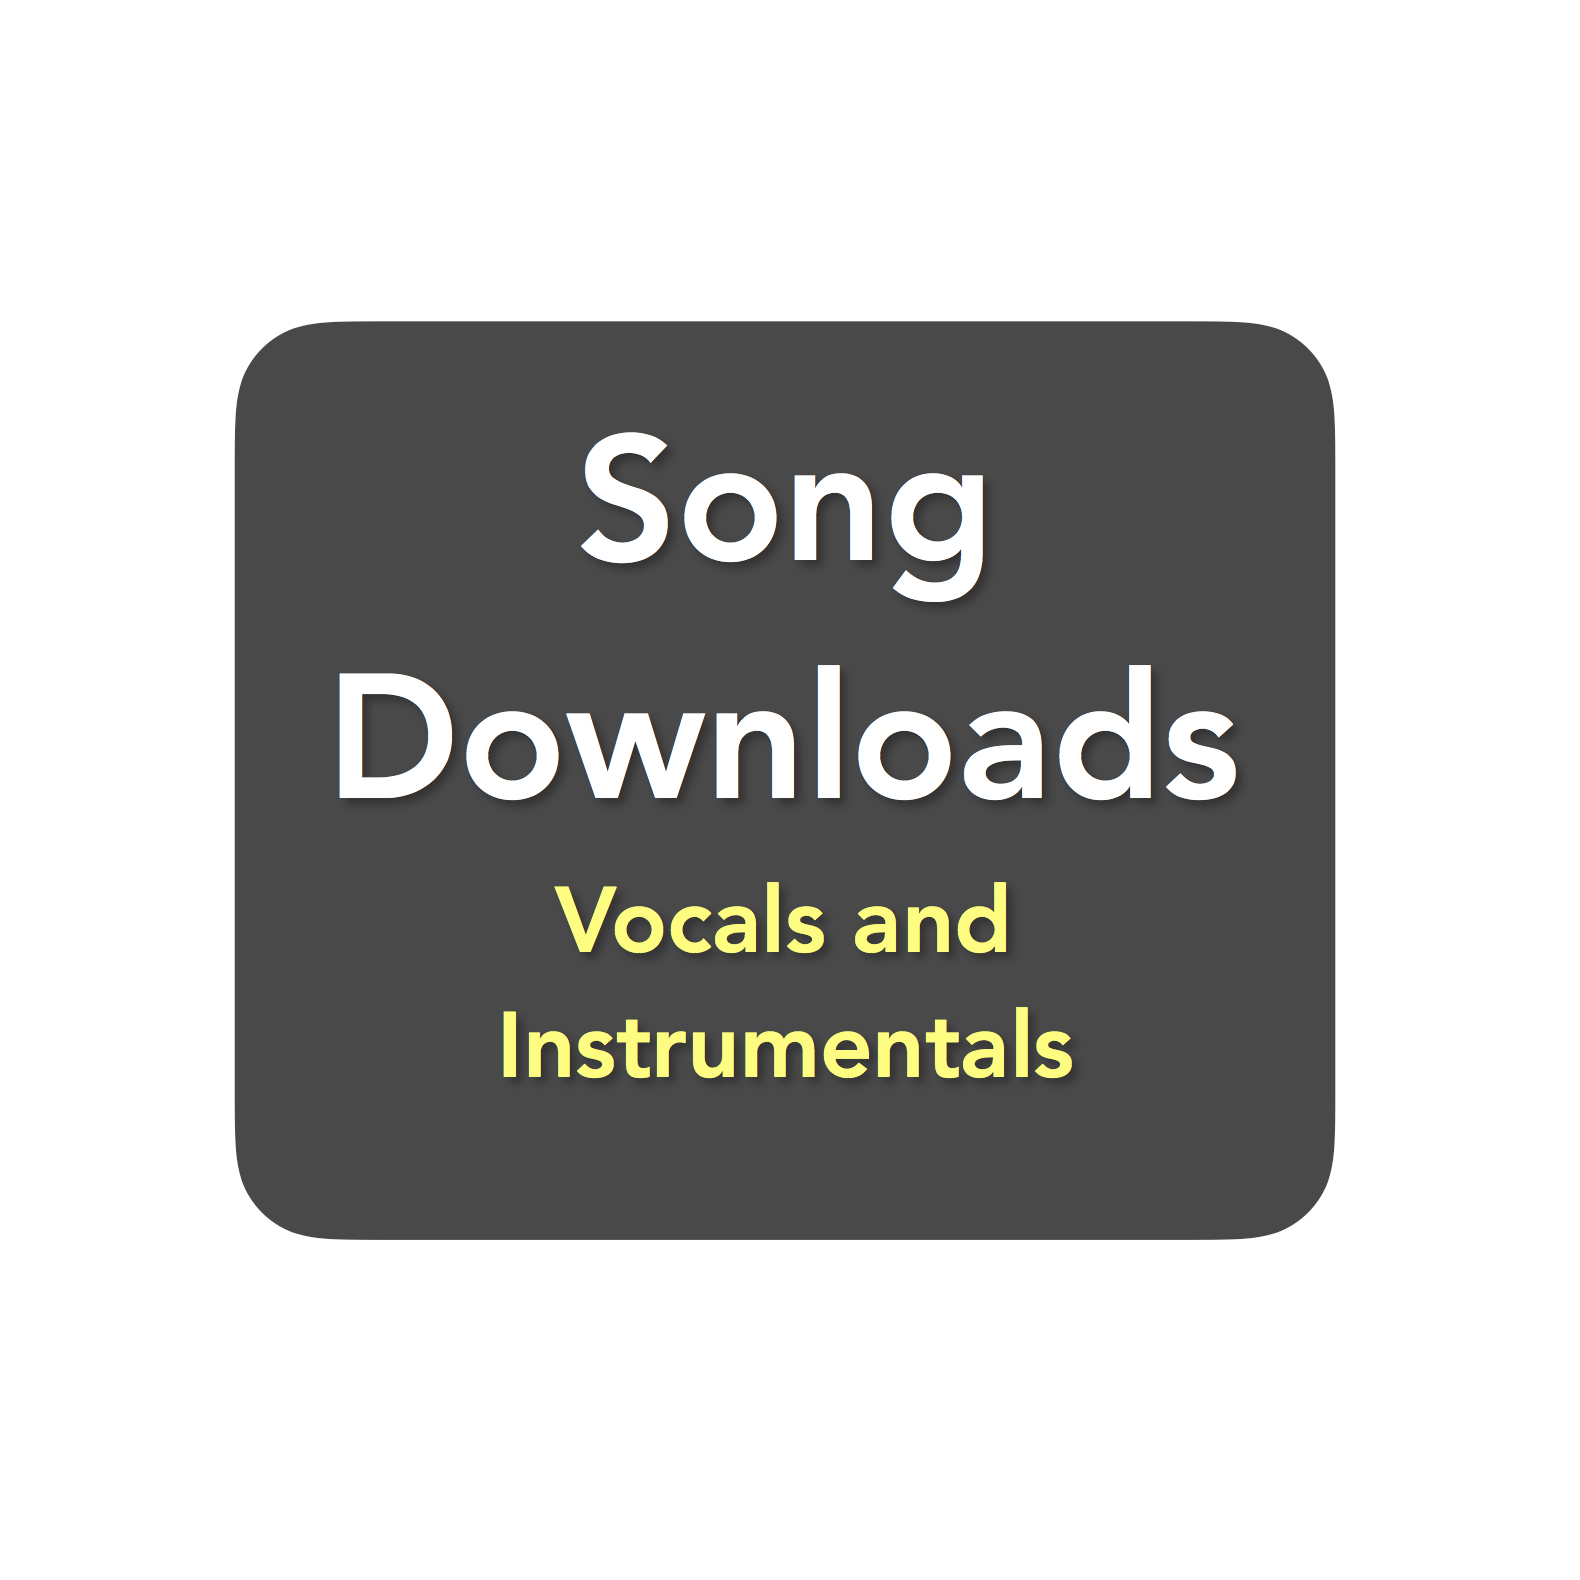 Song Downloads